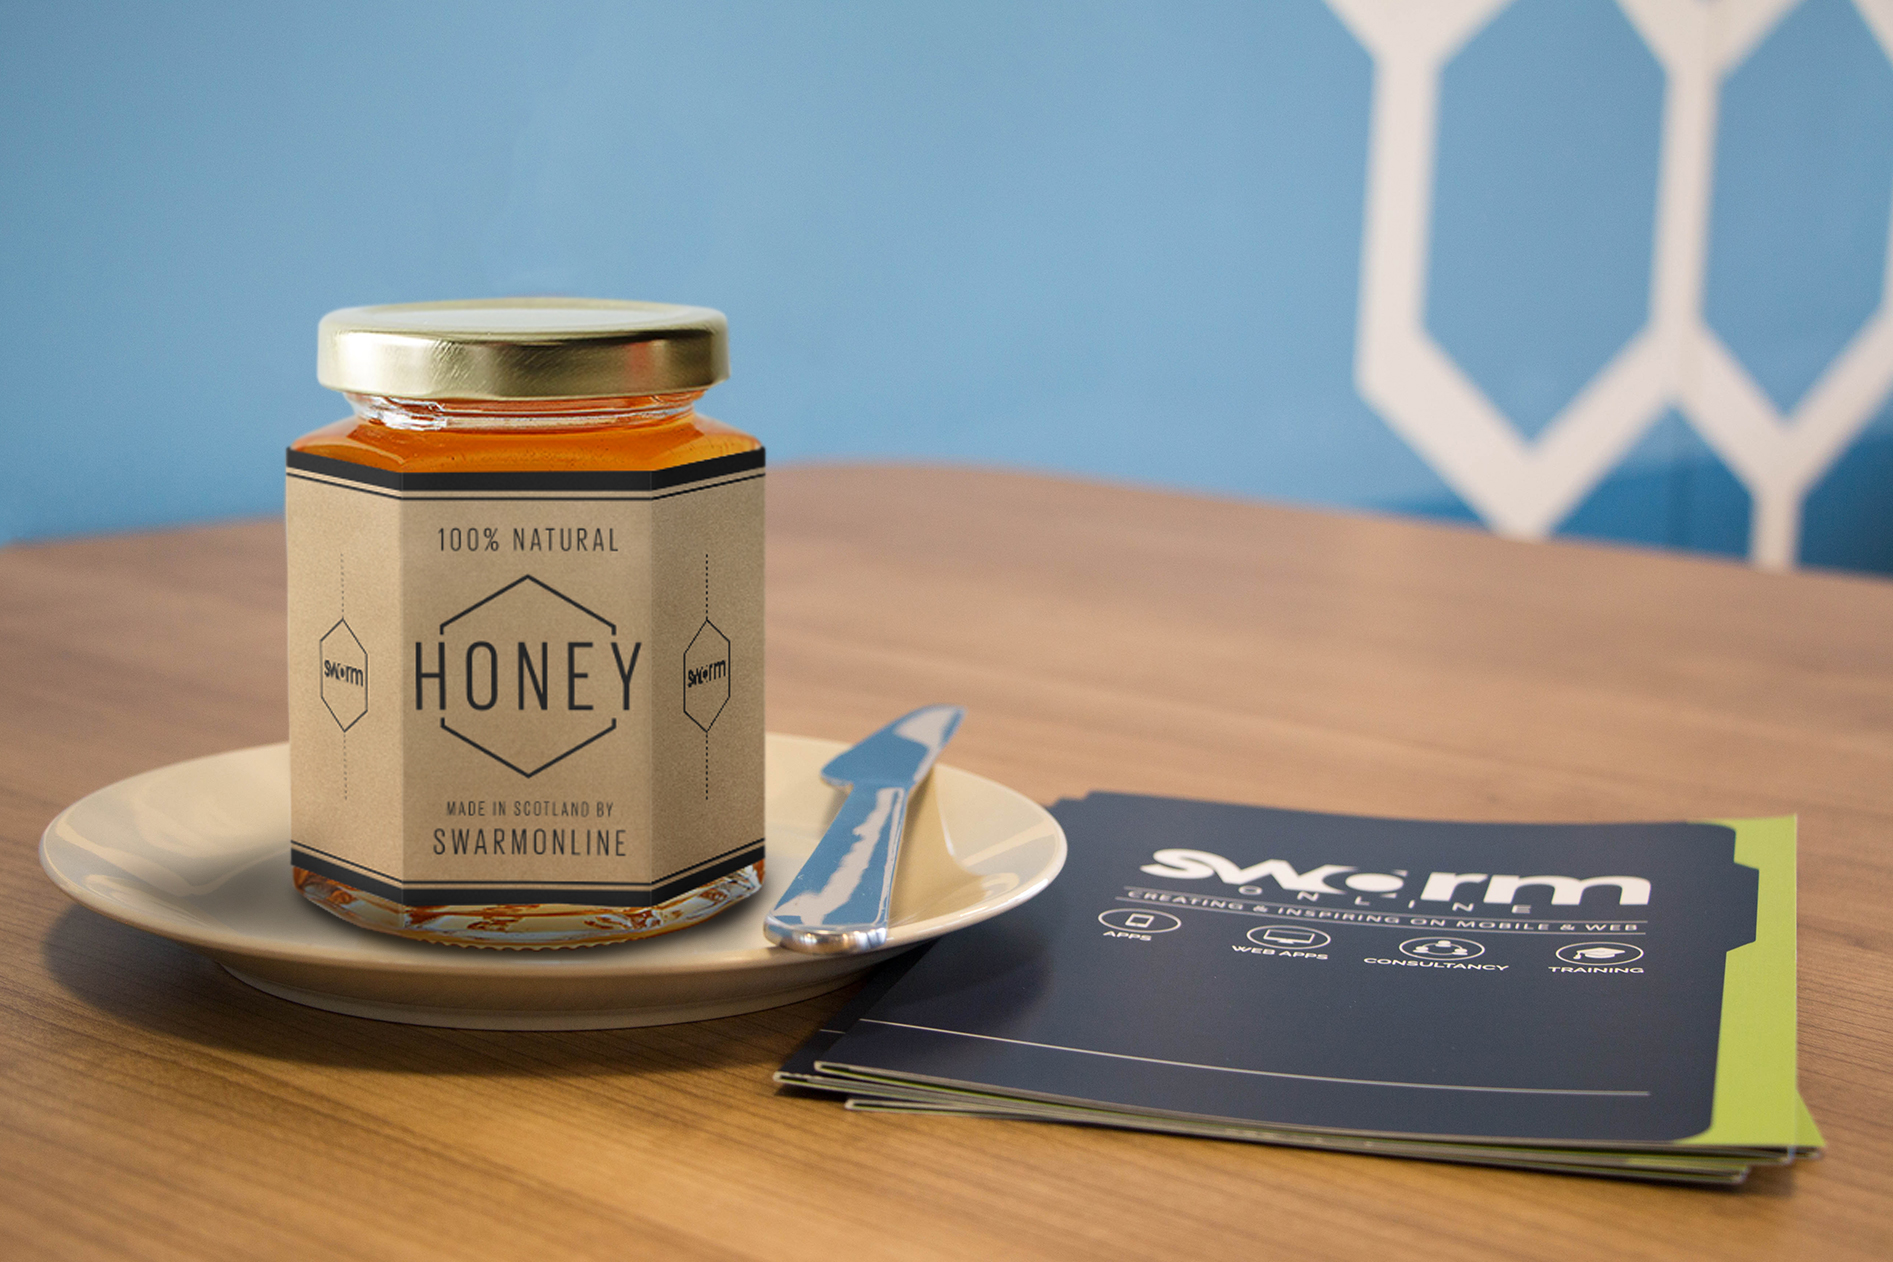 SwarmOnline Launches its Own Range of Honey